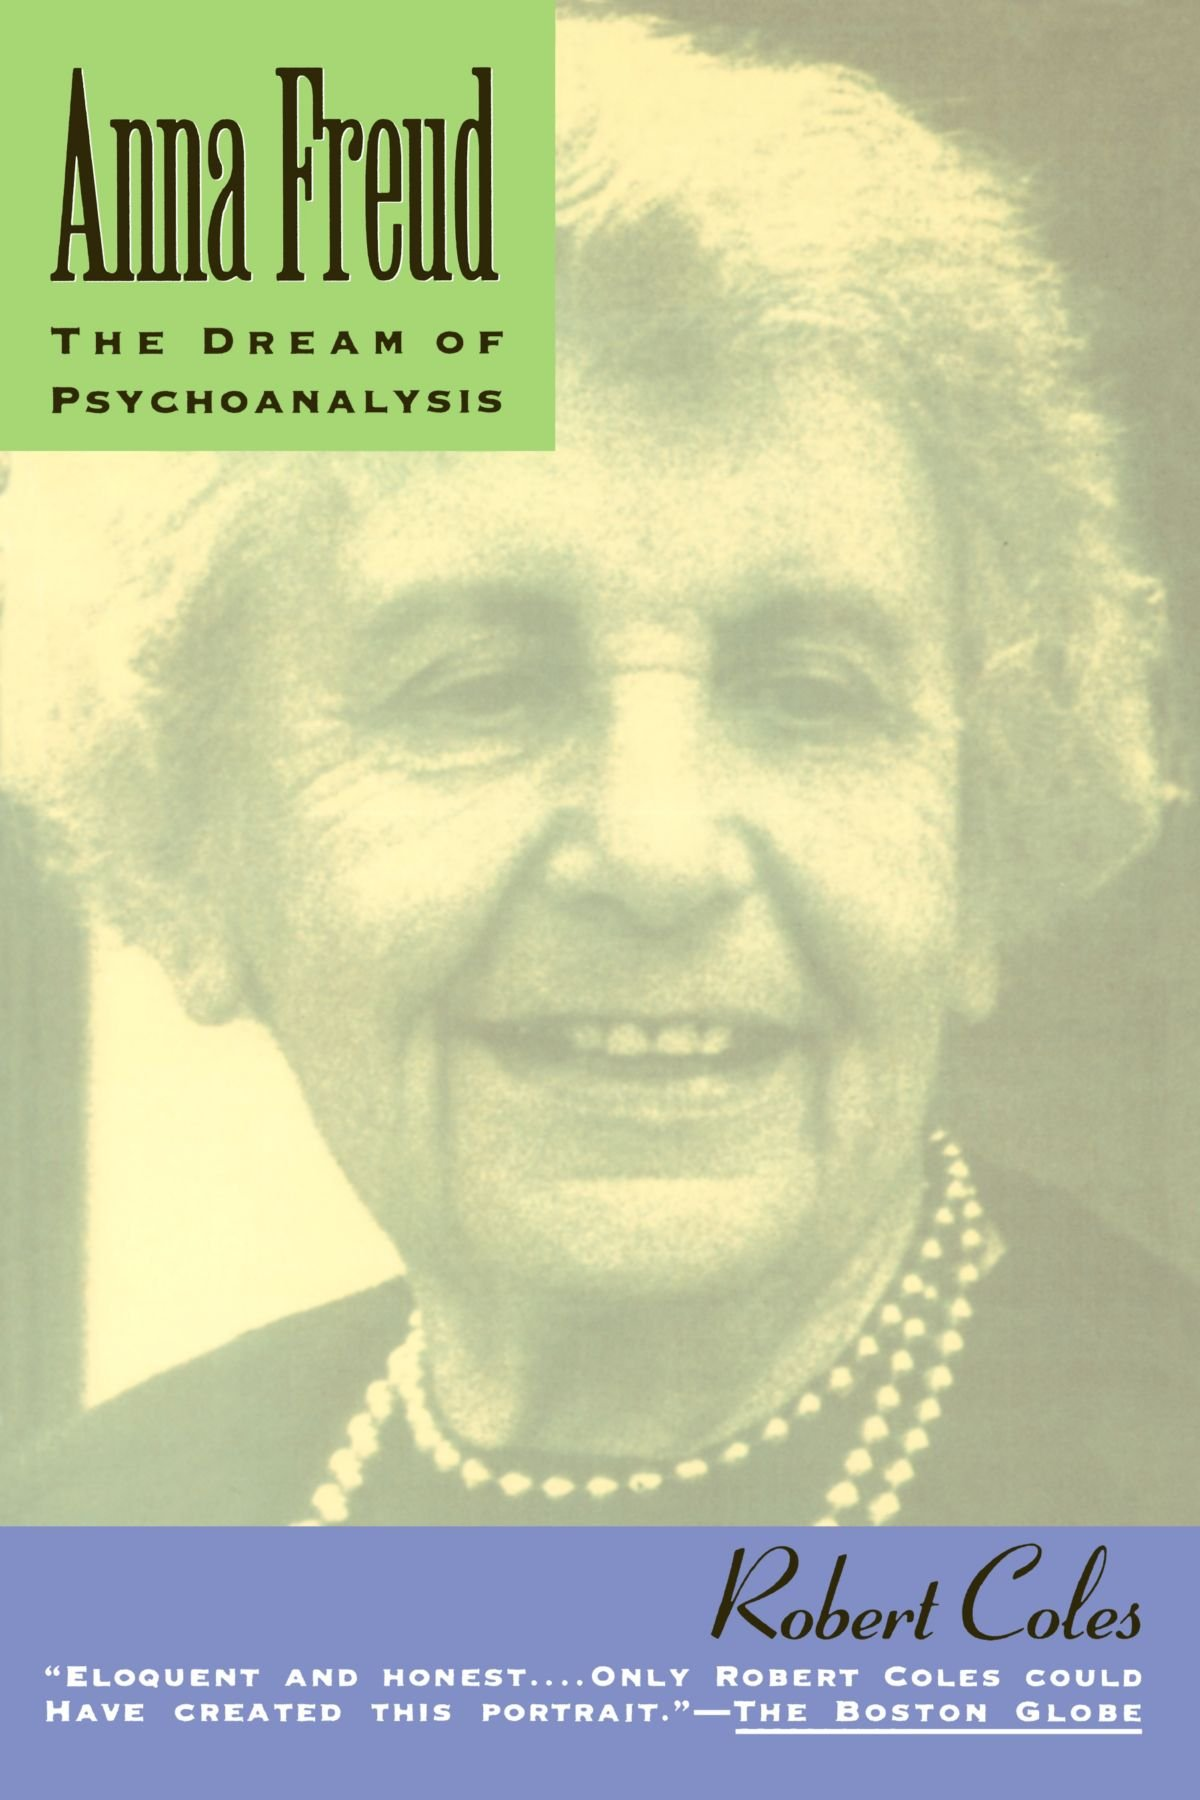 Anna Freud: The Dream Of Psychoanalysis (Radcliffe Biography Series)